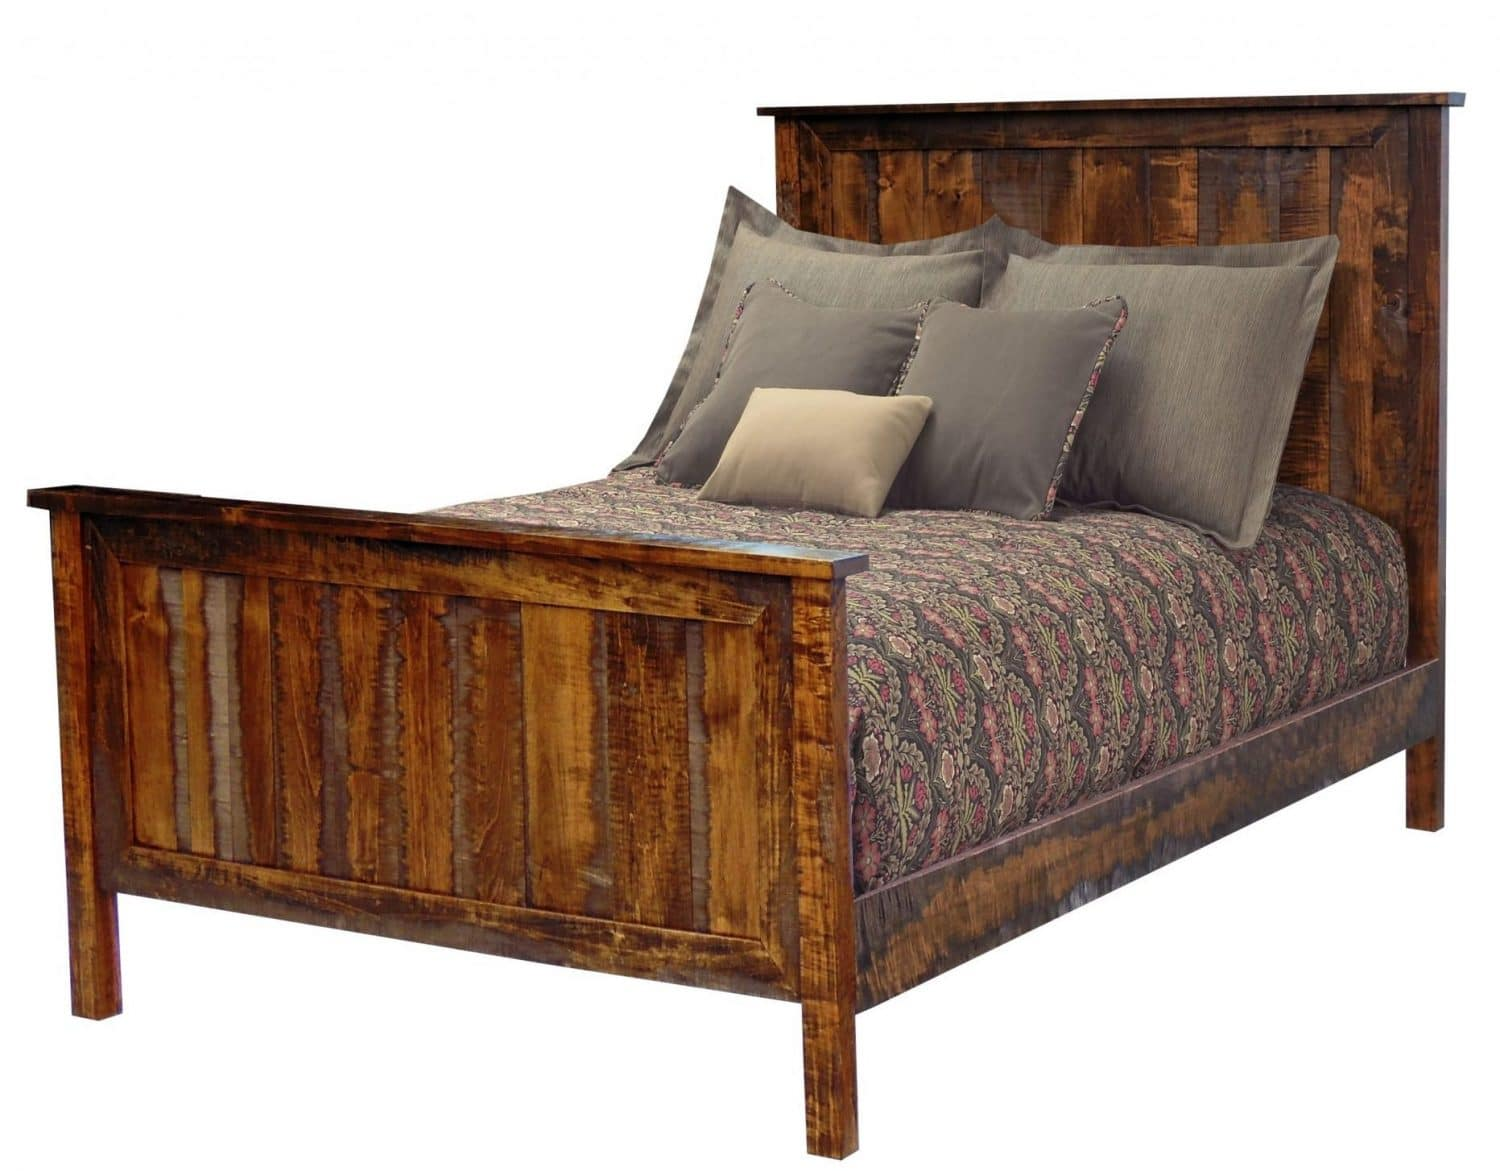 Timberline Panel Bed In Rough-Sawn Maple